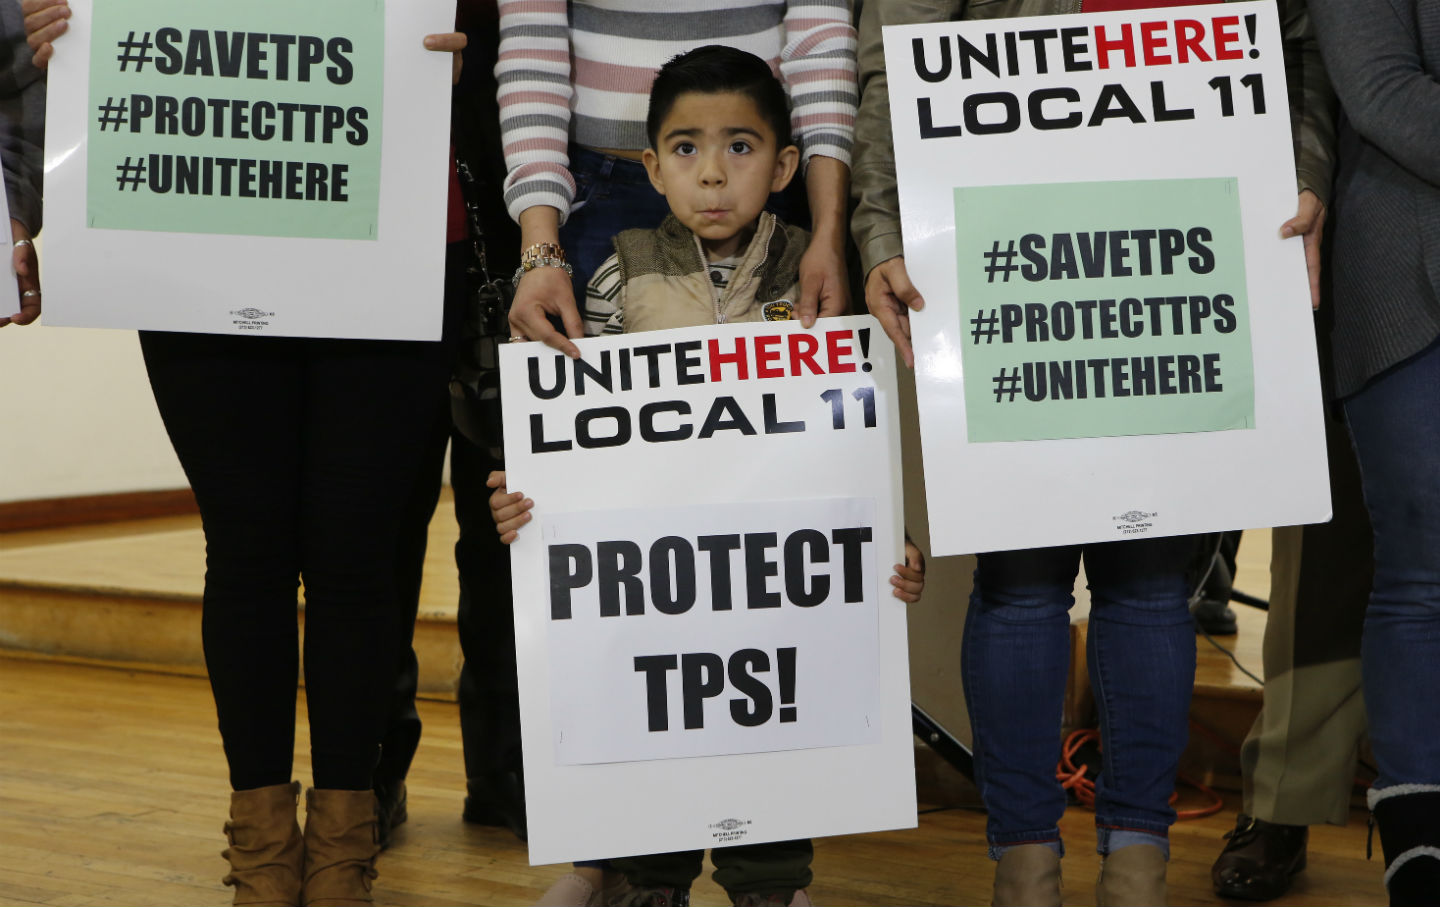 Mateo Barrera, 4, originally from El Salvador, whose family members benefit from Temporary Protected Status, attends a news conference in Los Angeles.